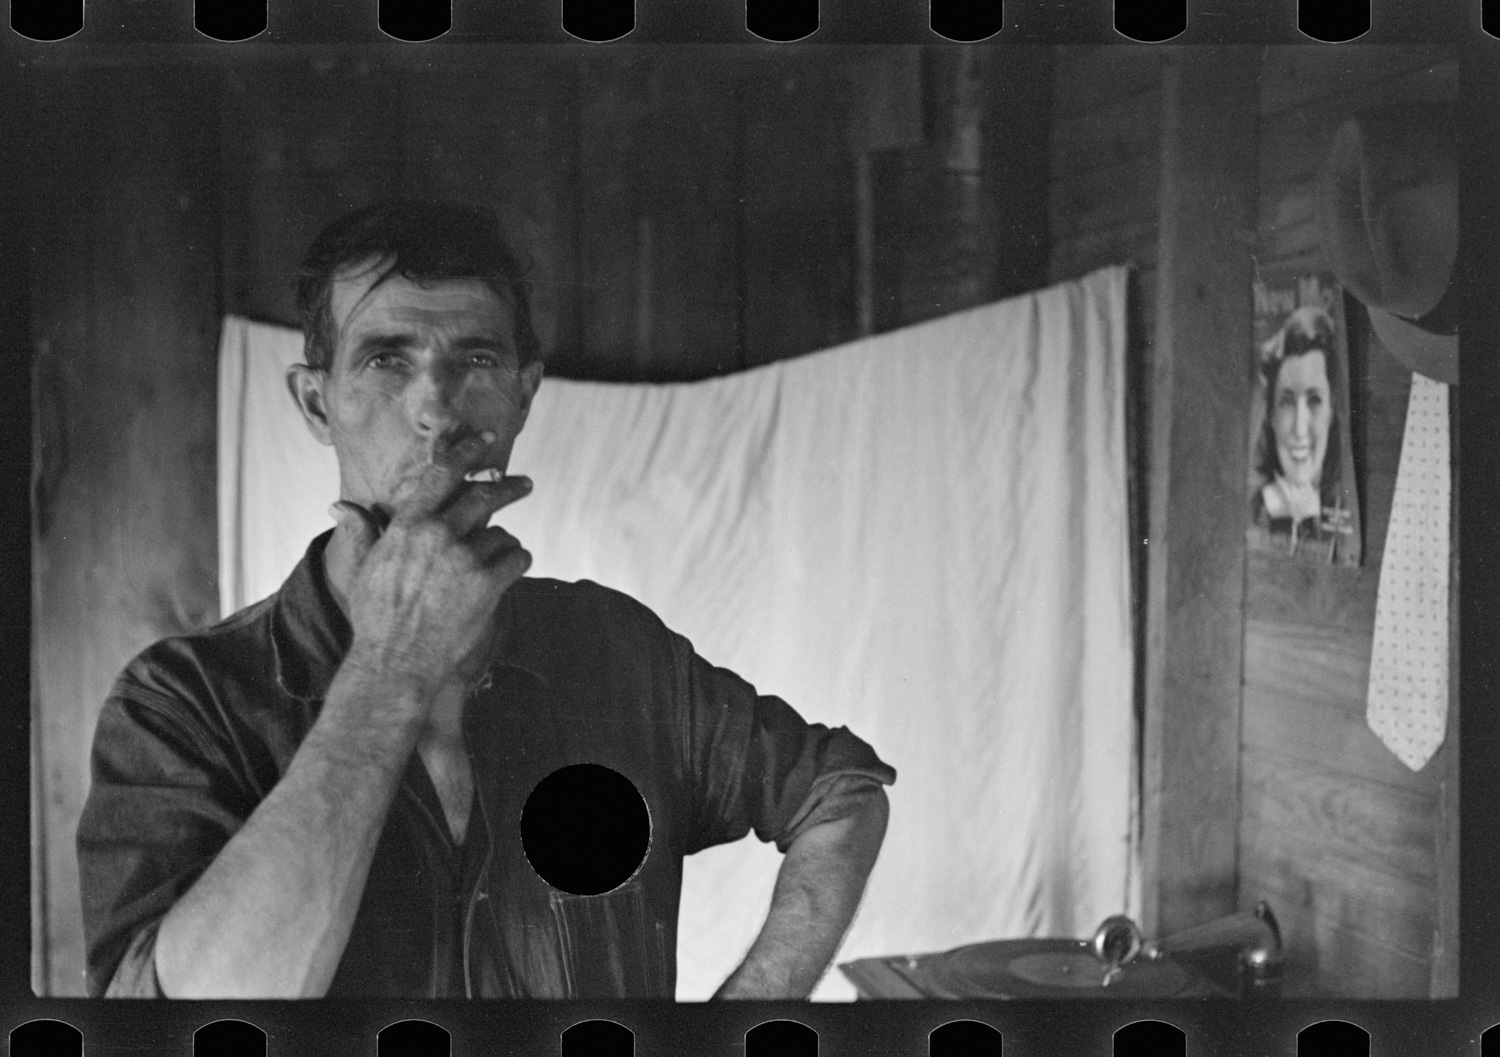 Photograph of a white man smoking a cigarette with a whole punched through his shirt. In the background are wooden walls, a hung sheet, and a phonograph.